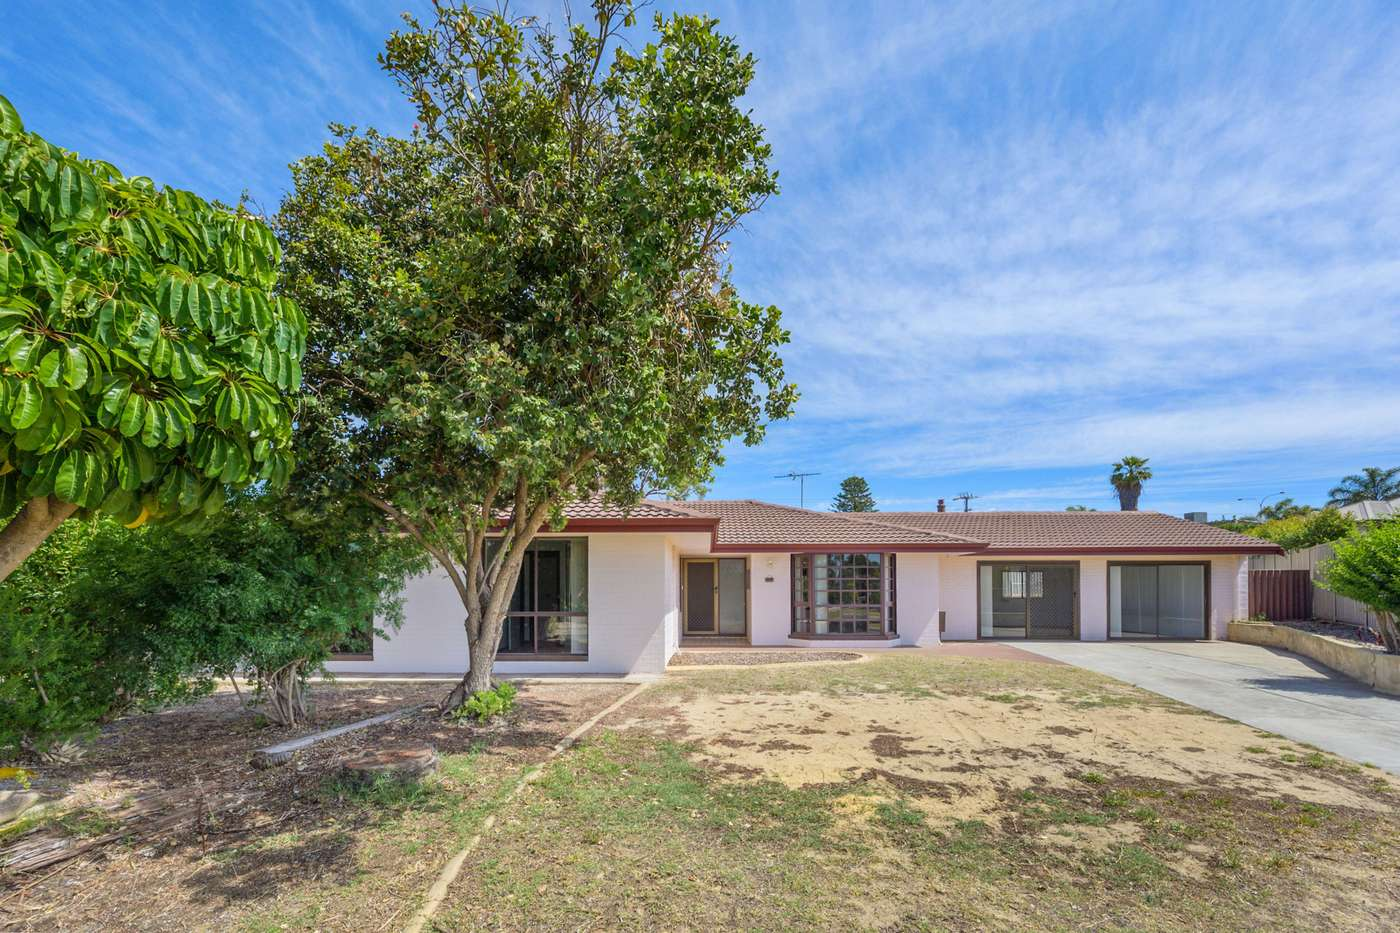 Main view of Homely house listing, 37 Bankhurst Way, Greenwood, WA 6024